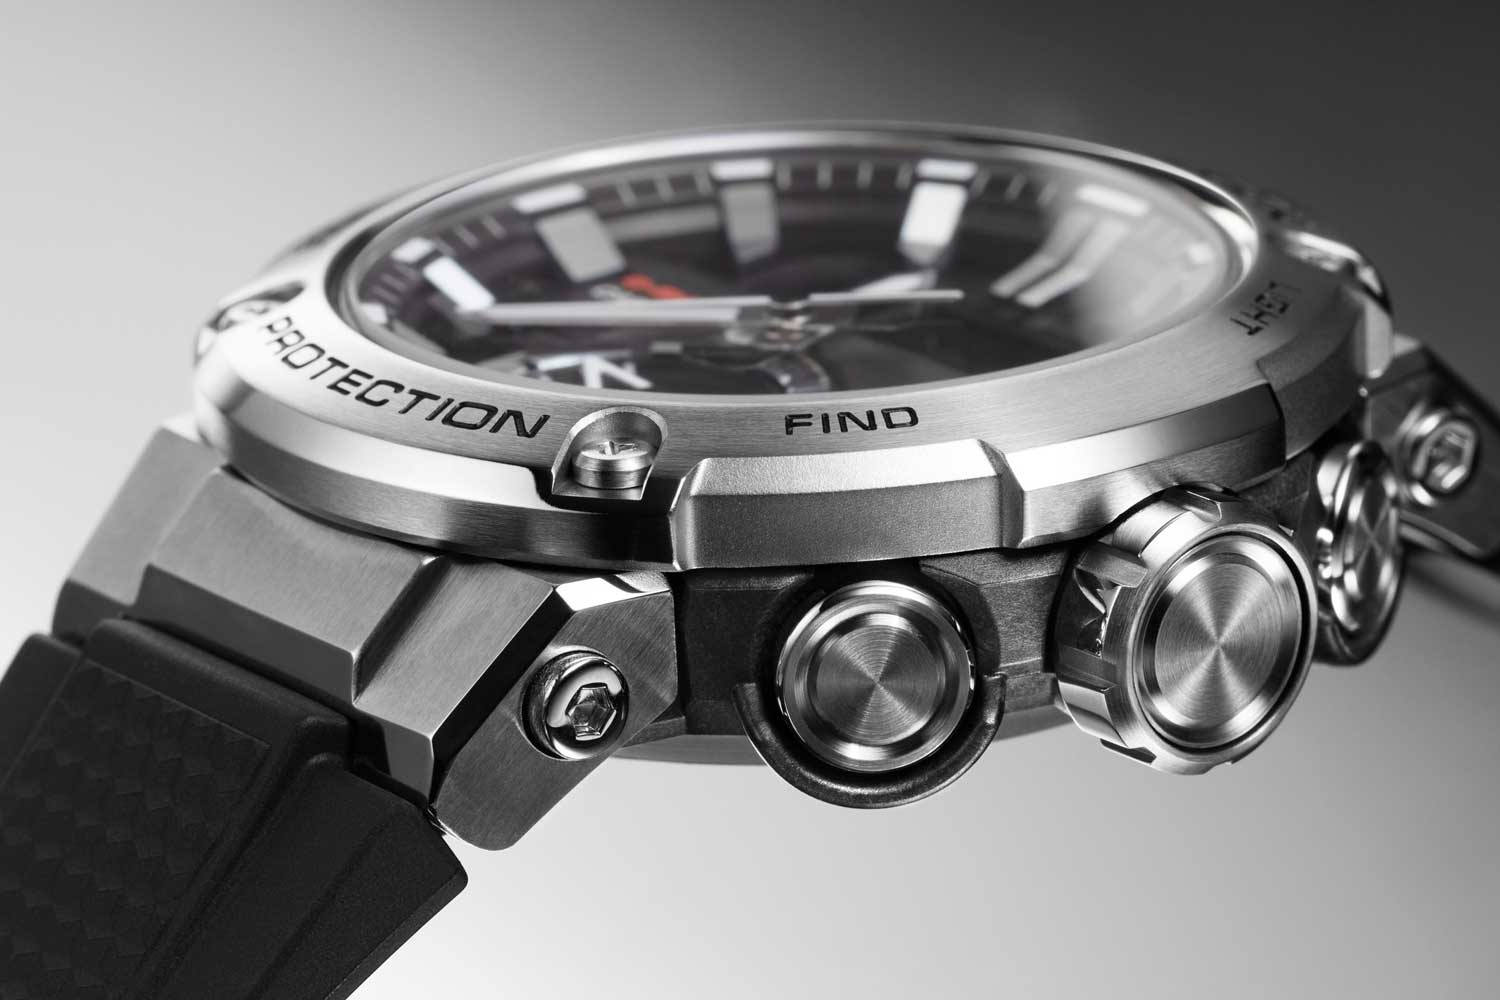 The Casio G-Steel Carbon Core Guard GST-B200 series of watches feature a carbon fiber reinforced mid-case (Image © Revolution)